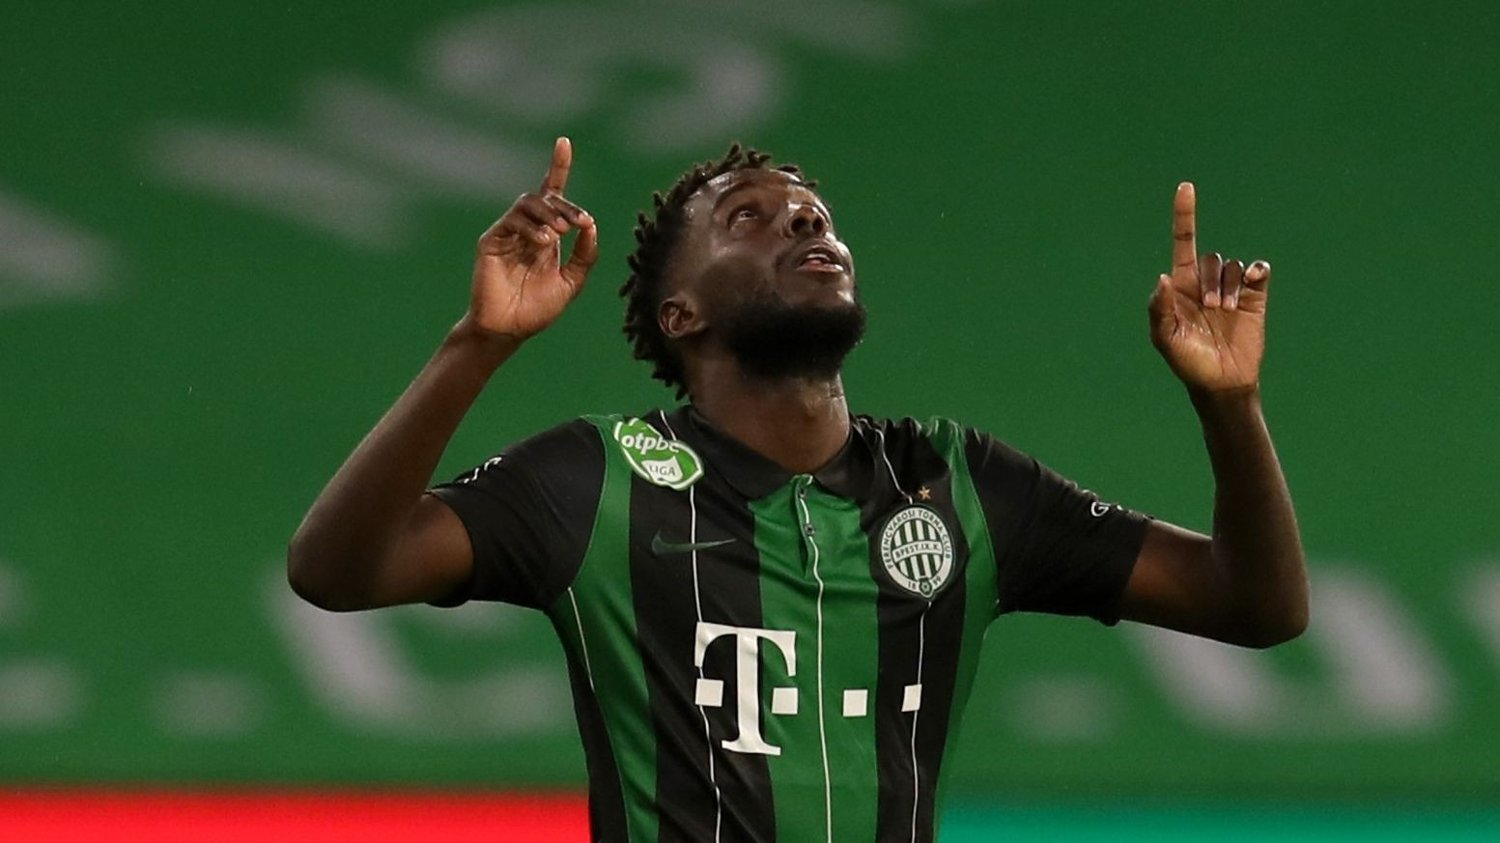 Ferencvaros' Tokmac Nguen celebrates scoring his side's second goal of the game during the UEFA Champions League second qualifying round match at Celtic Park, Glasgow.